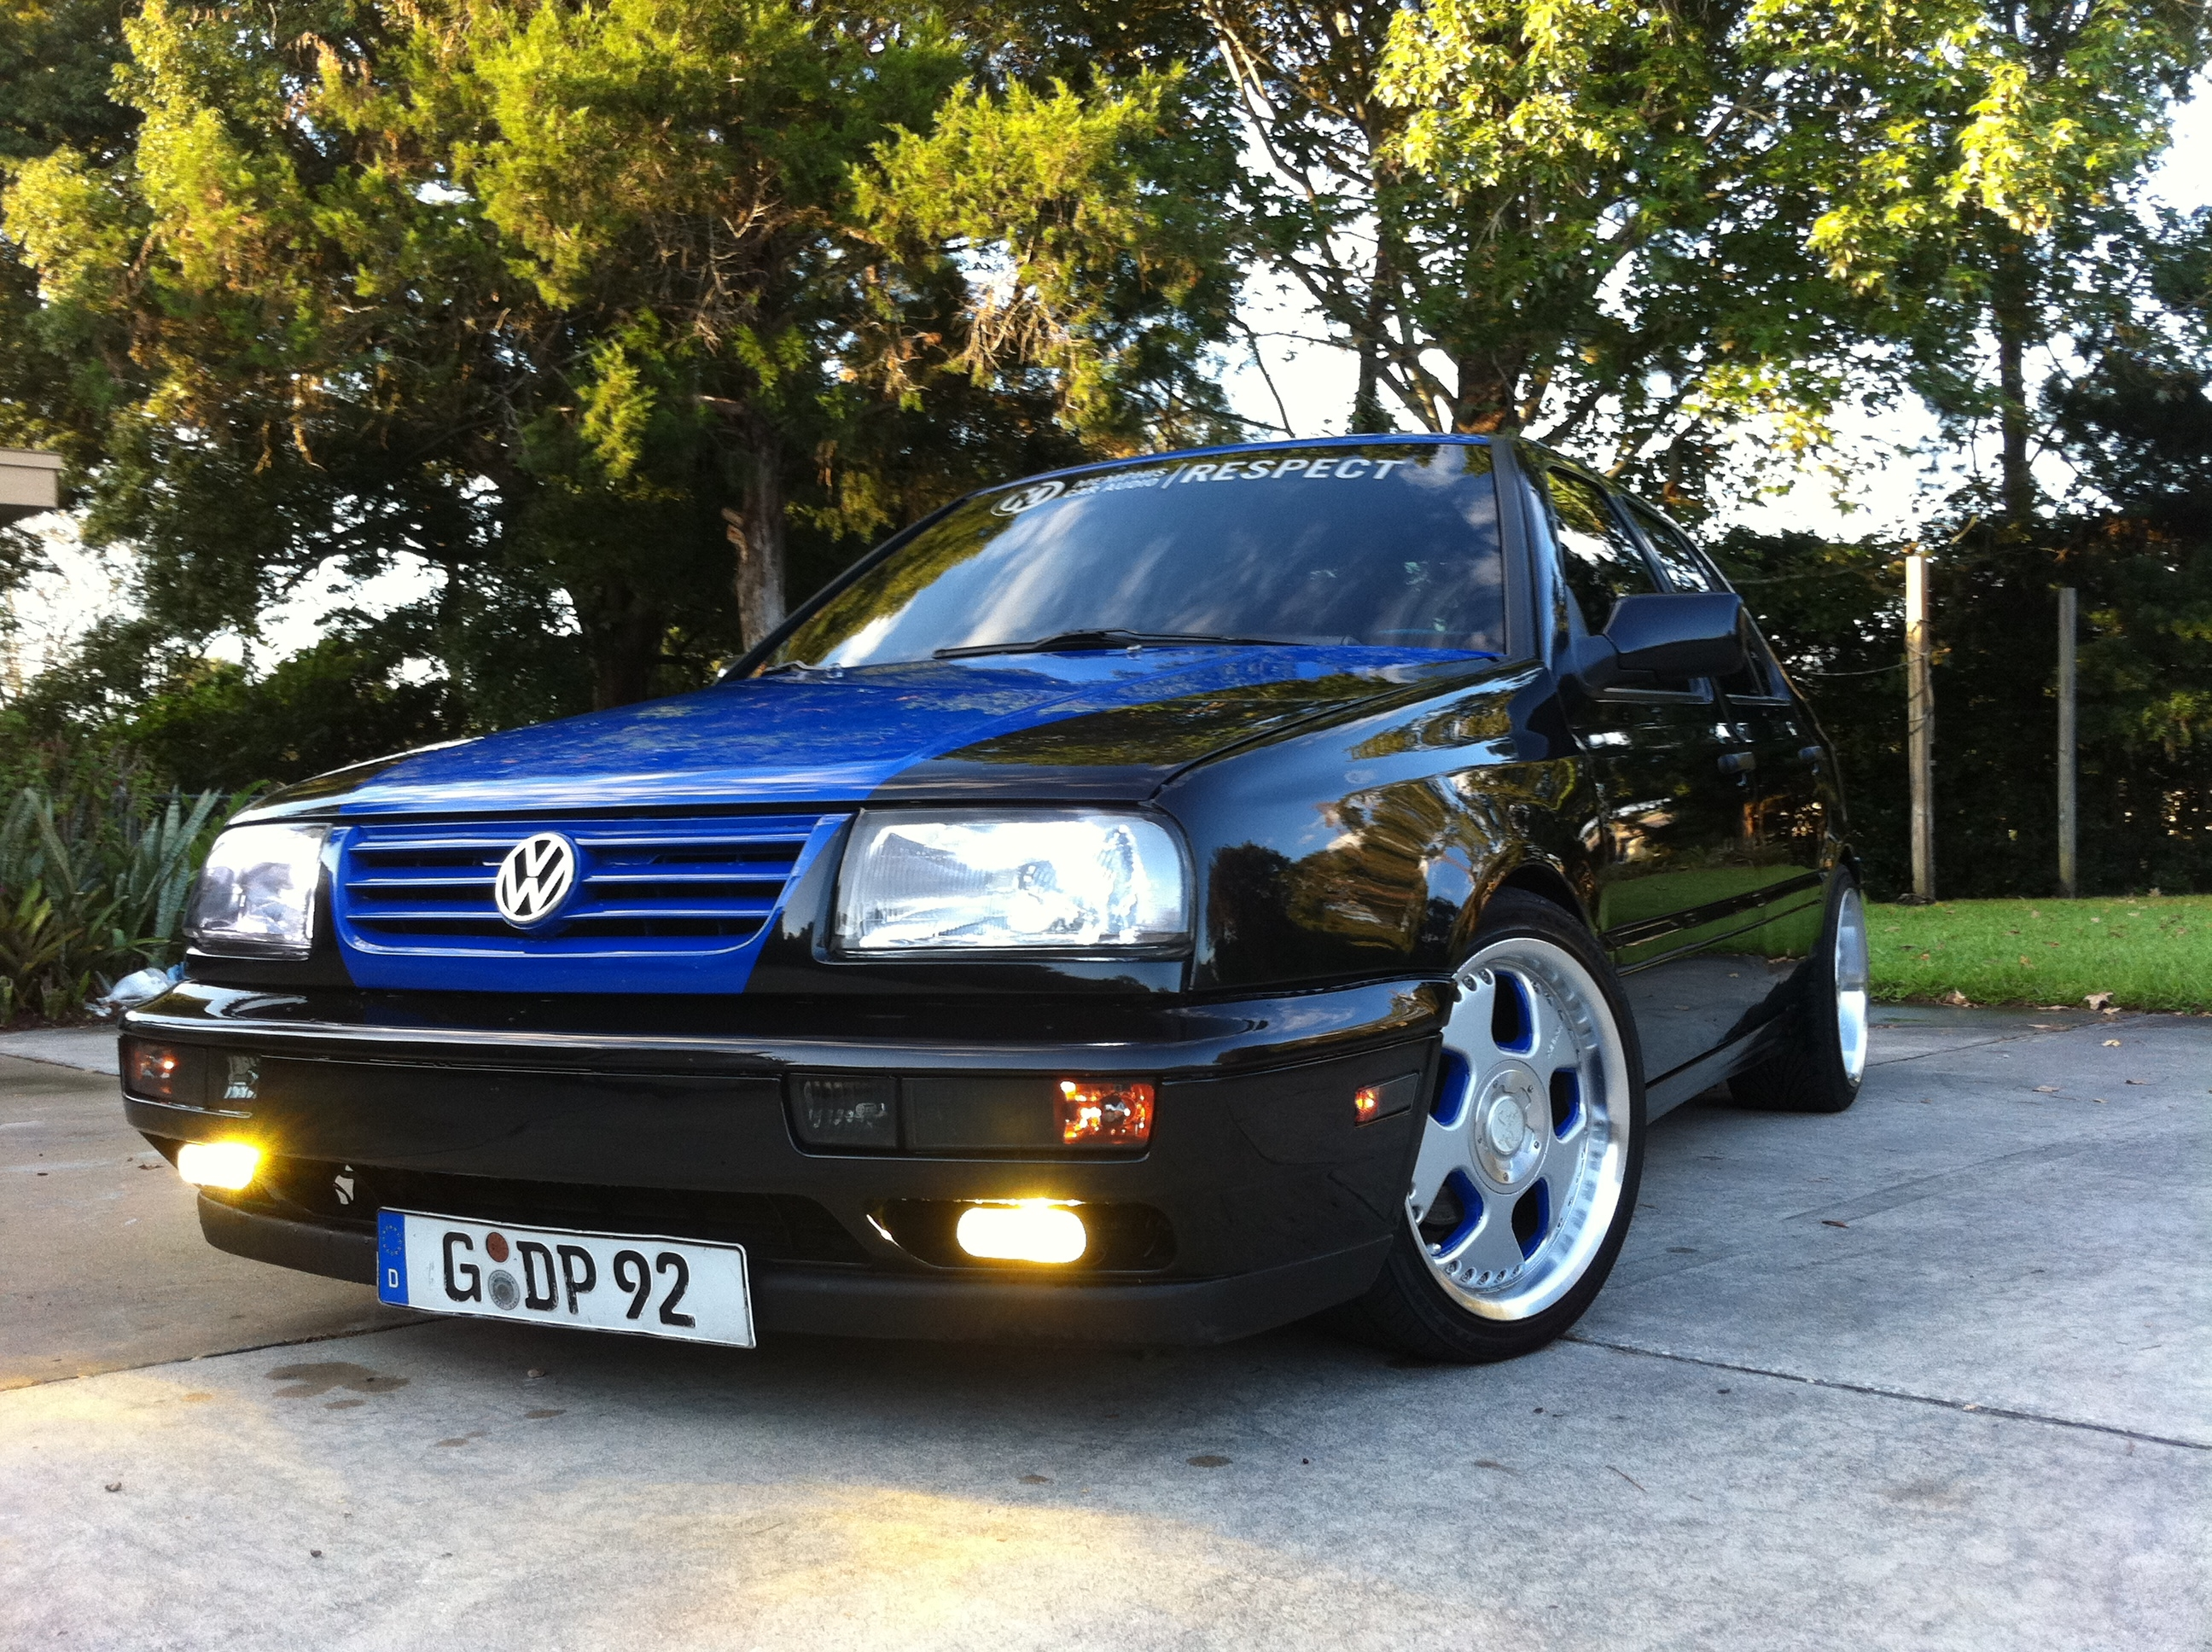 1997 Vw Jetta Gt Manual Transmission Browse Guides Wiring Diagram Volkswagen Database U2022 Rh Itgenergy Co 5 Speed